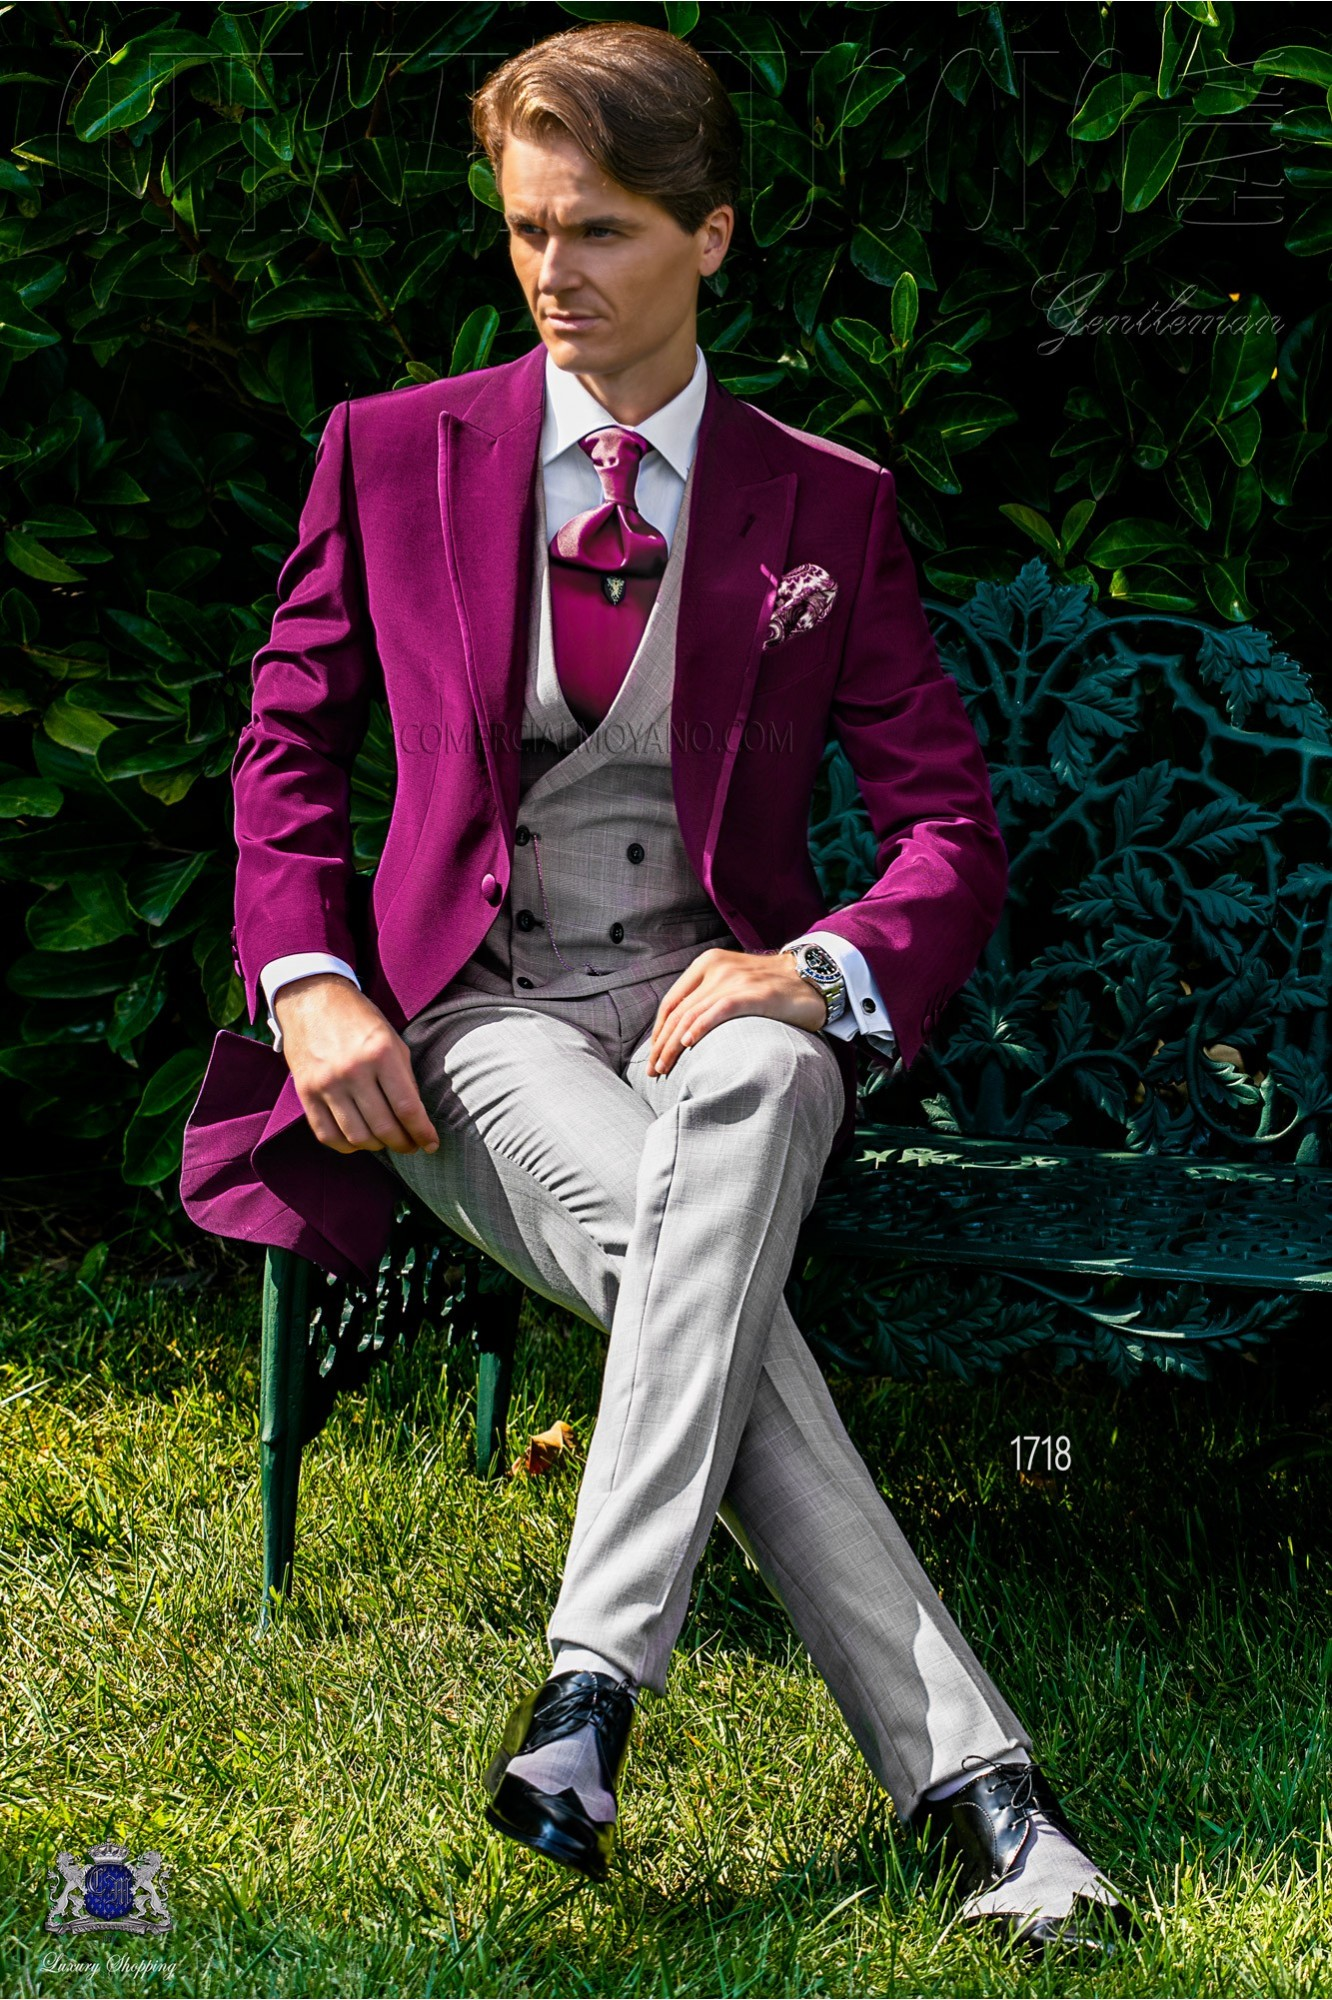 Burgundy morning suit with Prince of Wales trousers model 1718 Ottavio Nuccio Gala